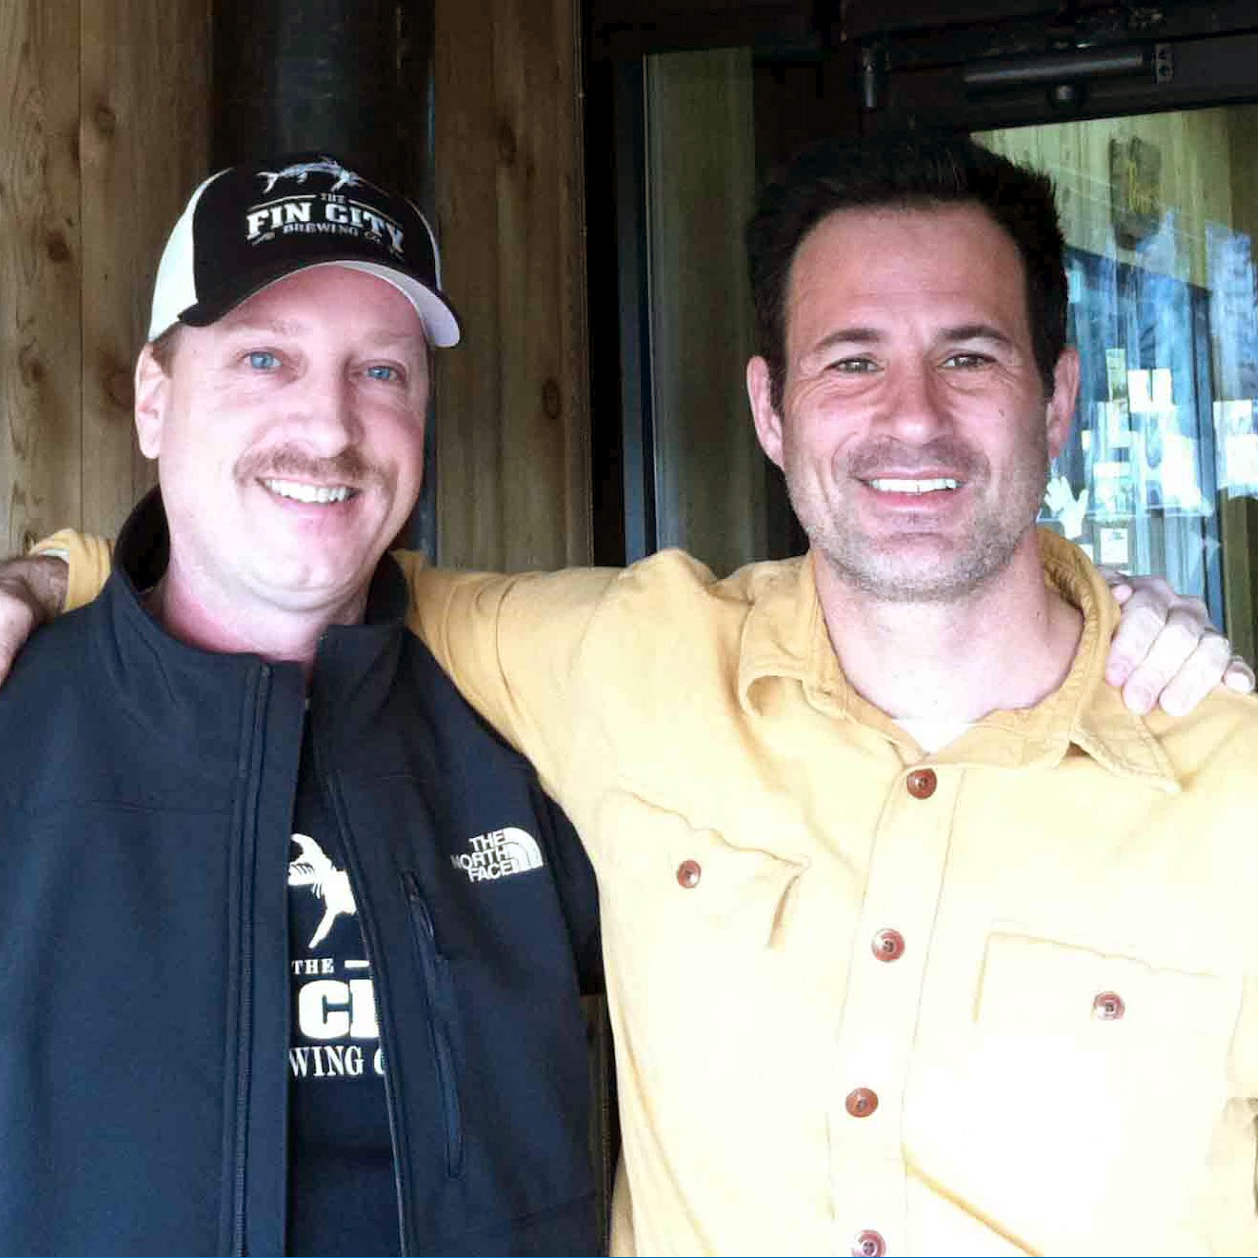 two male owners of fin city brewing company